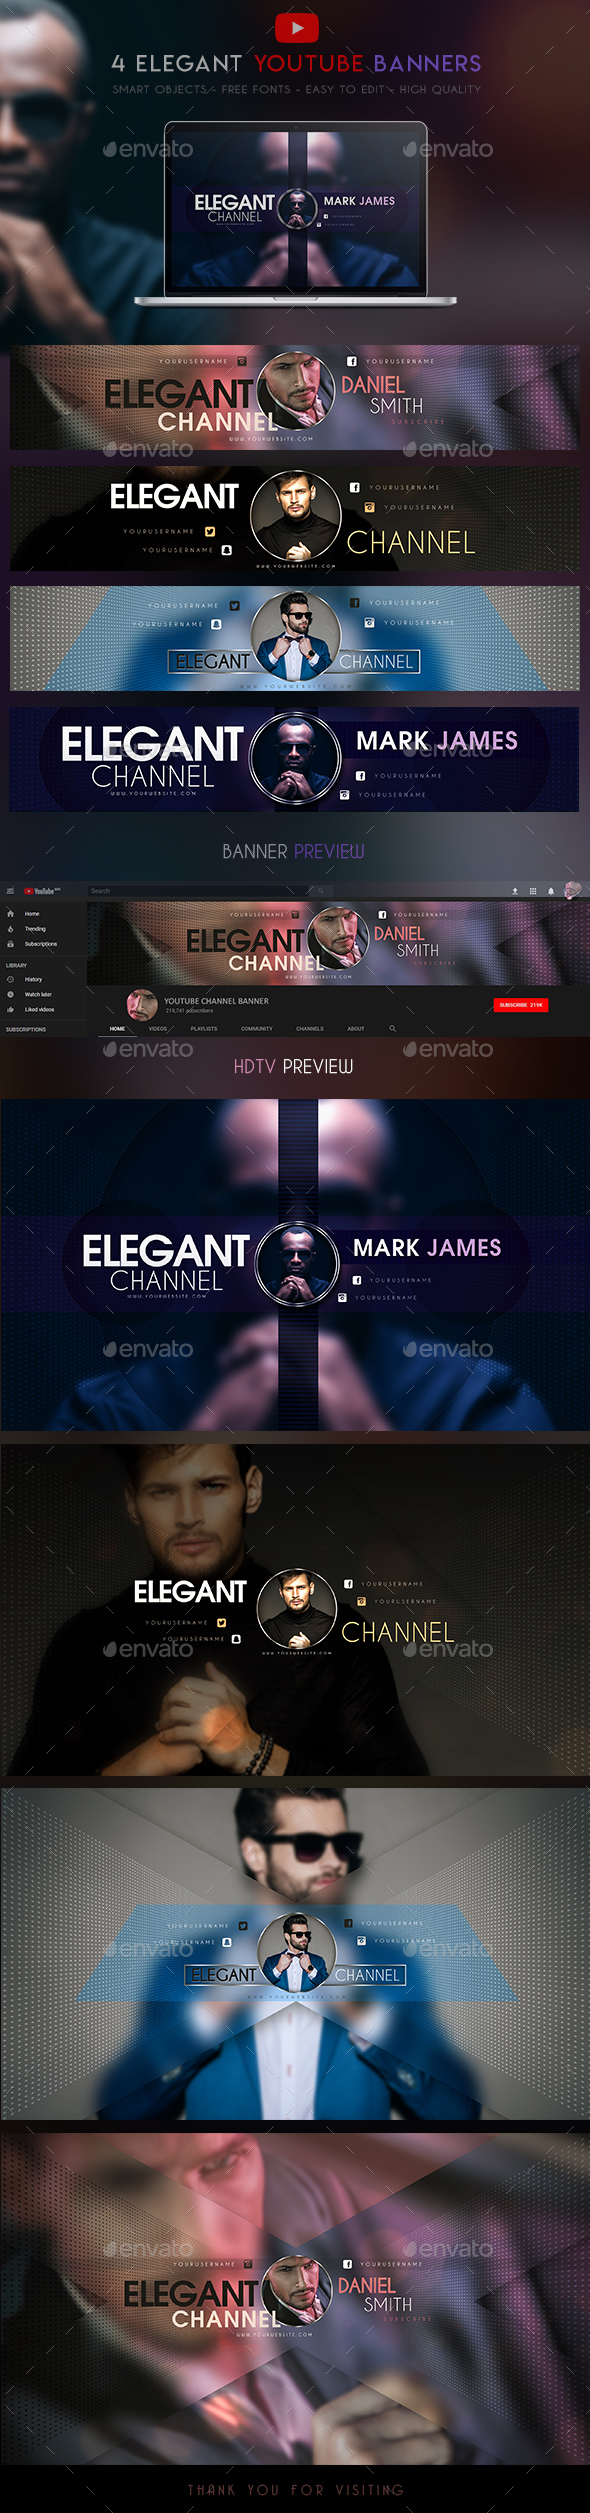 4 Elegant YouTube Banners - YouTube Social Media